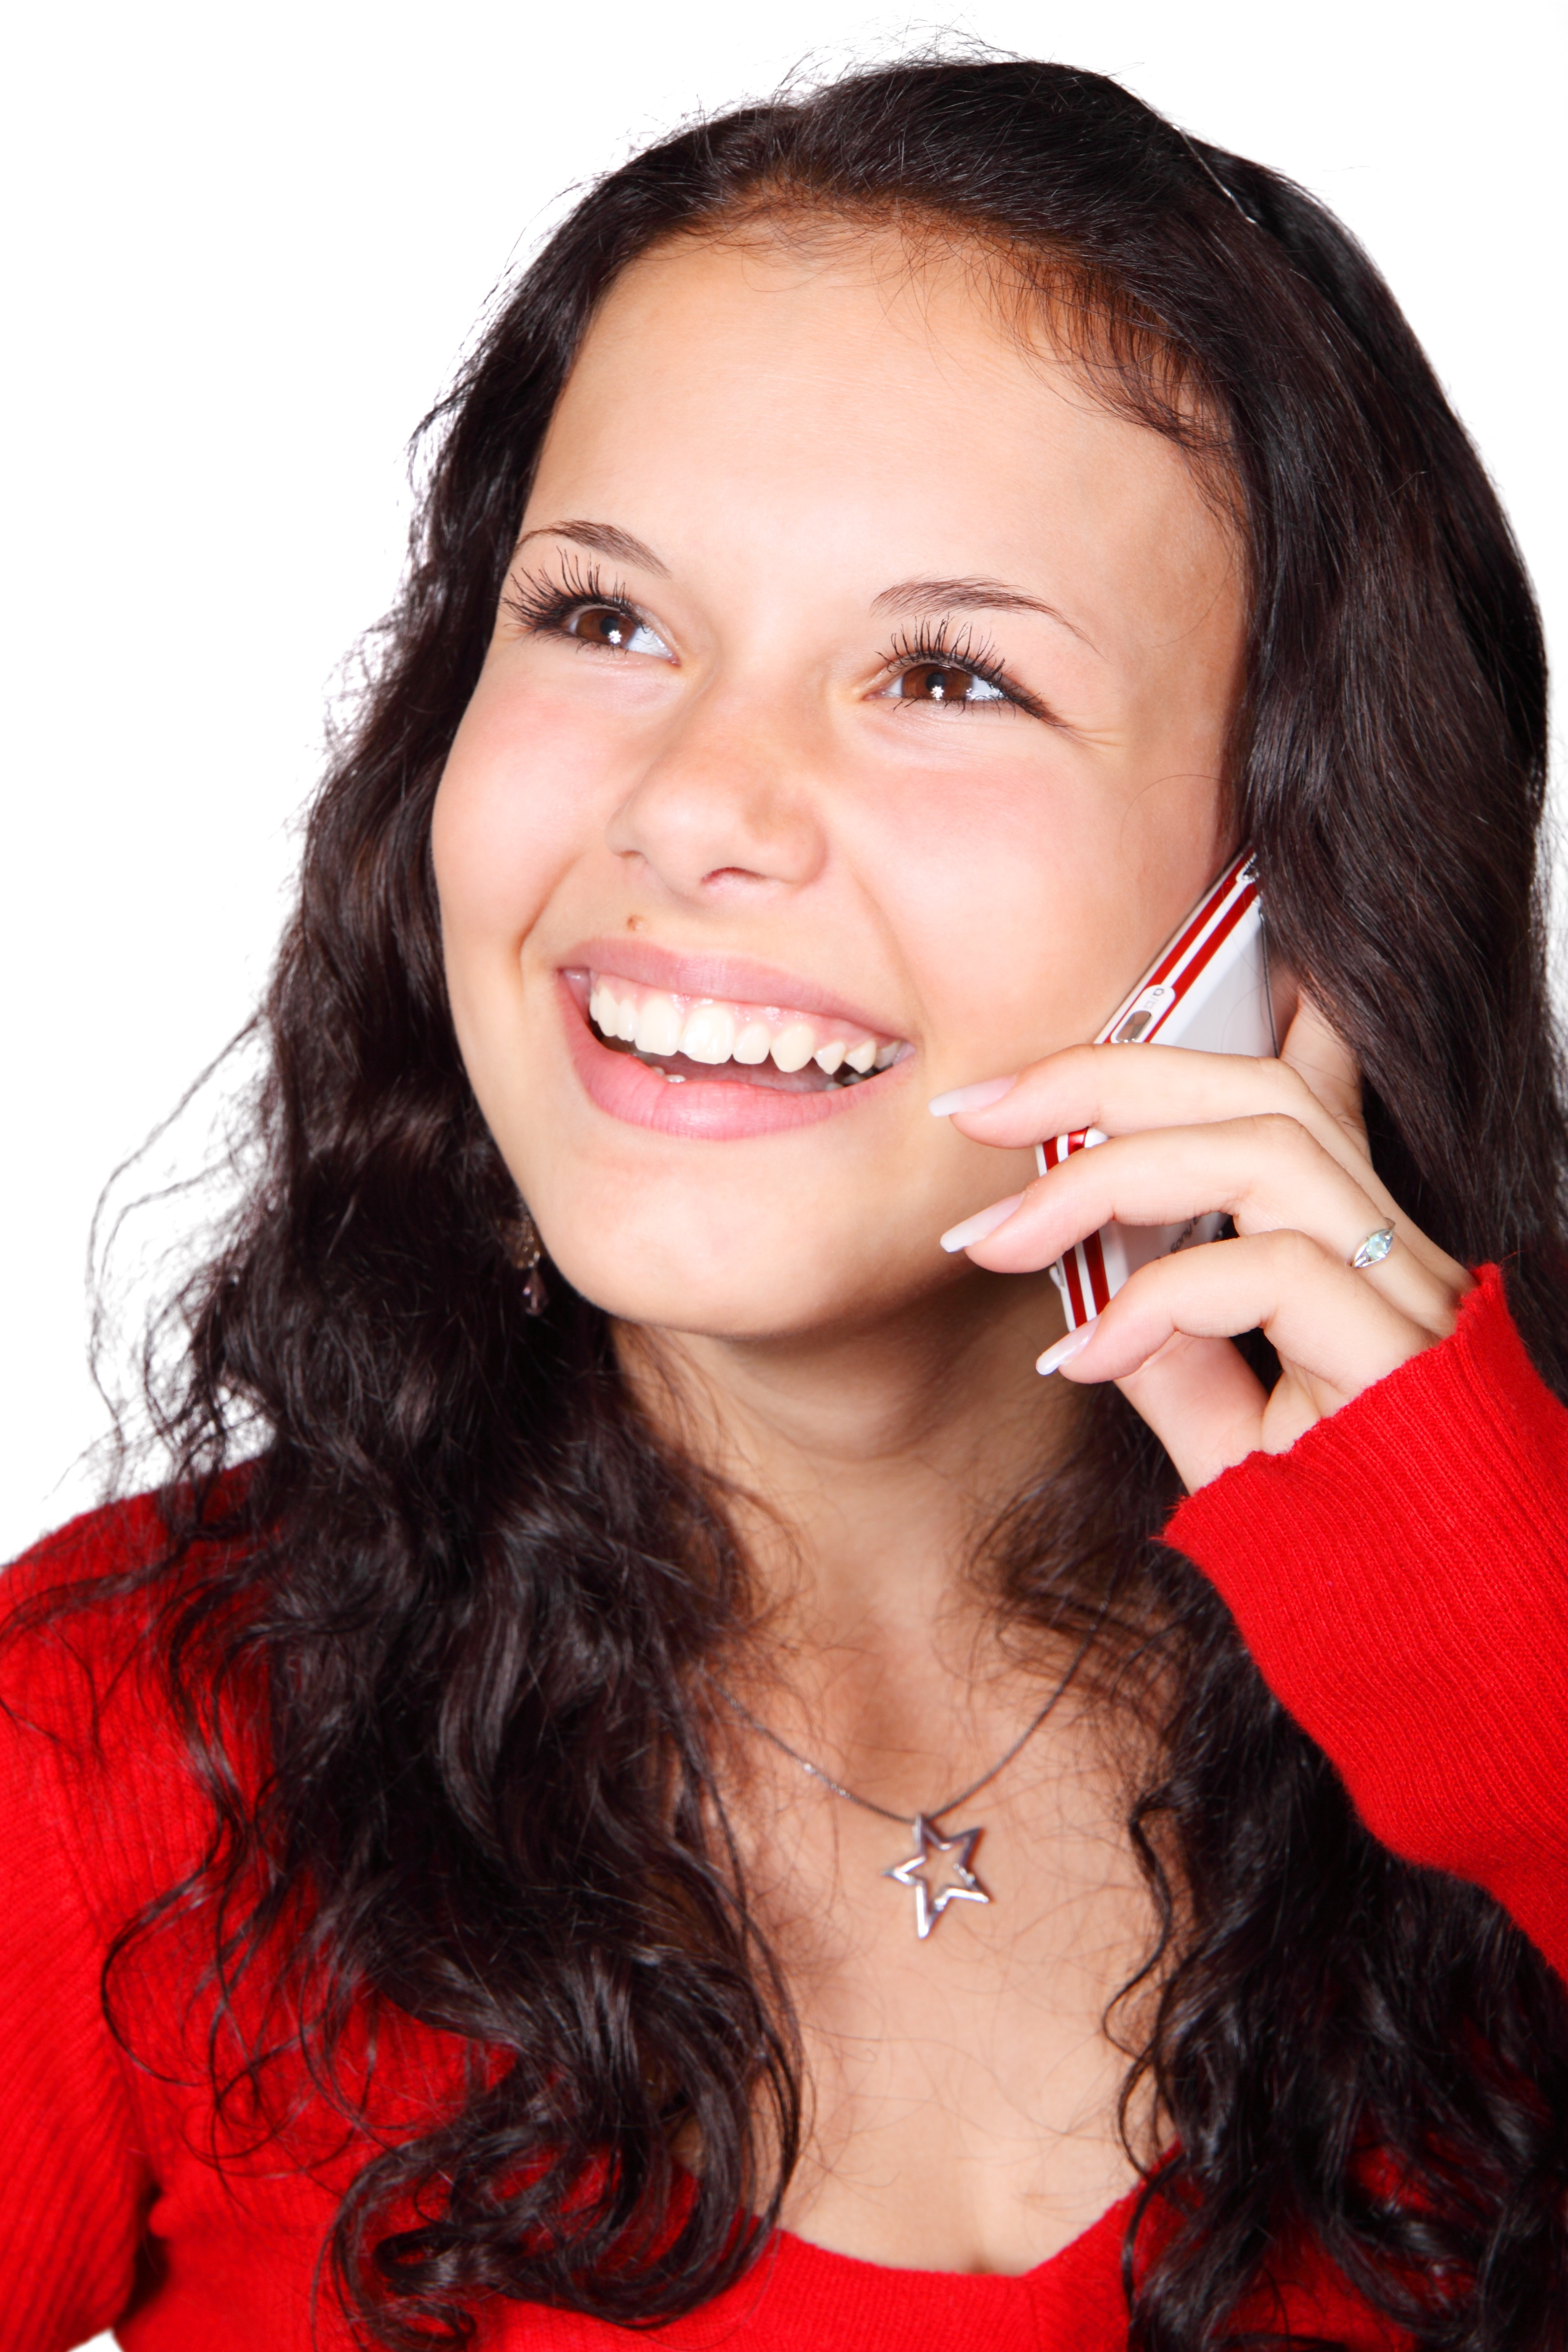 Girl Calling, Activity, Call, Cell, Girl, HQ Photo